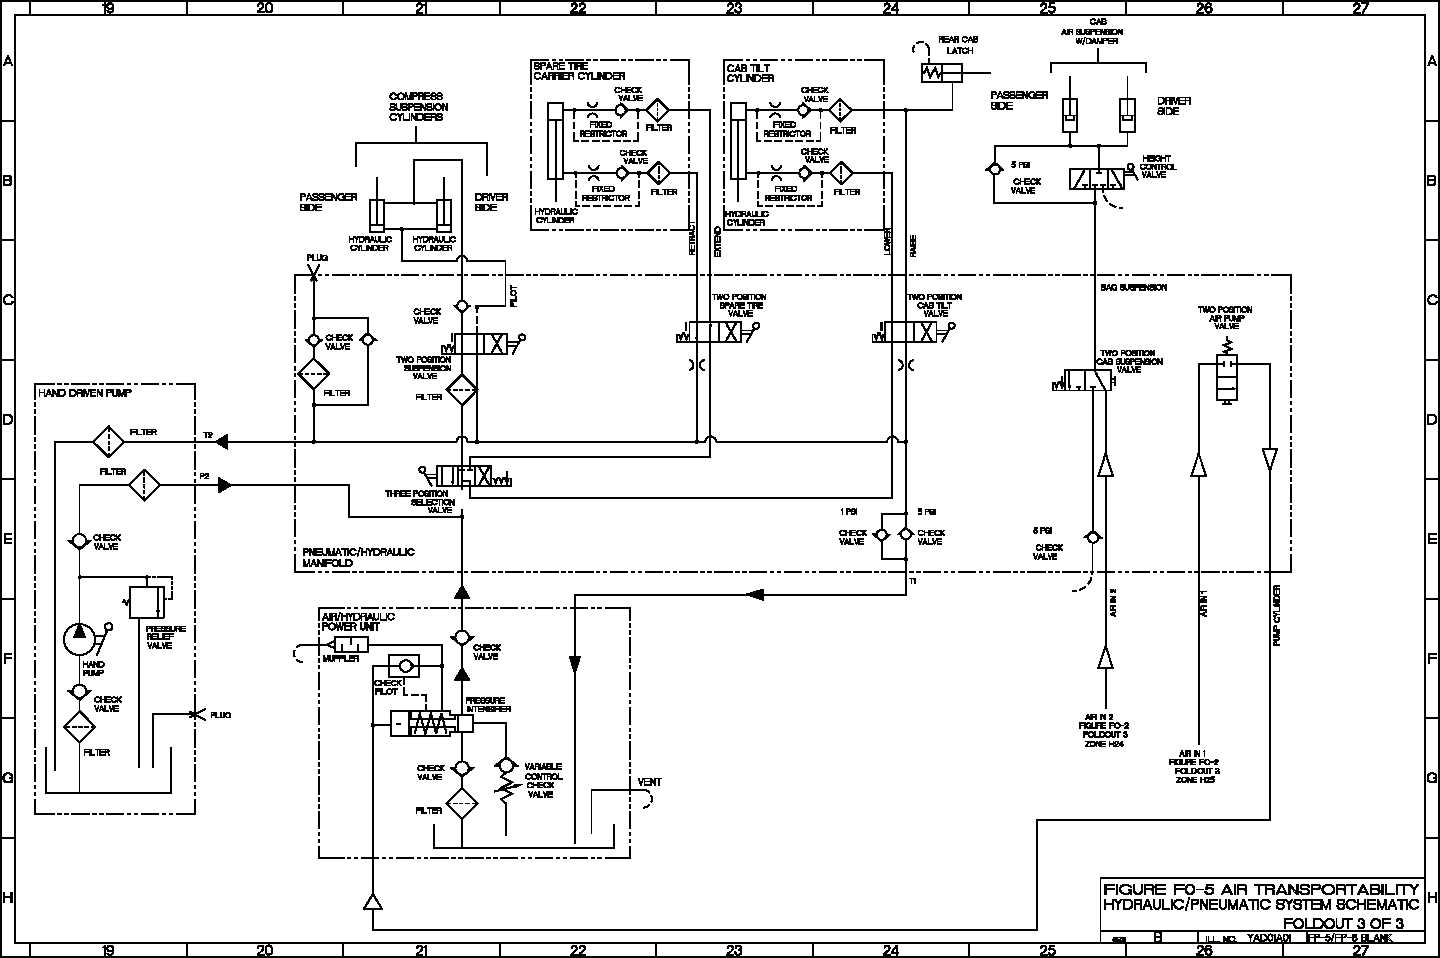 Hydraulic Schematic Wiring Library Cylinder Basic Circuit Air Transportability Pneumatic System Tm 9 2320 365